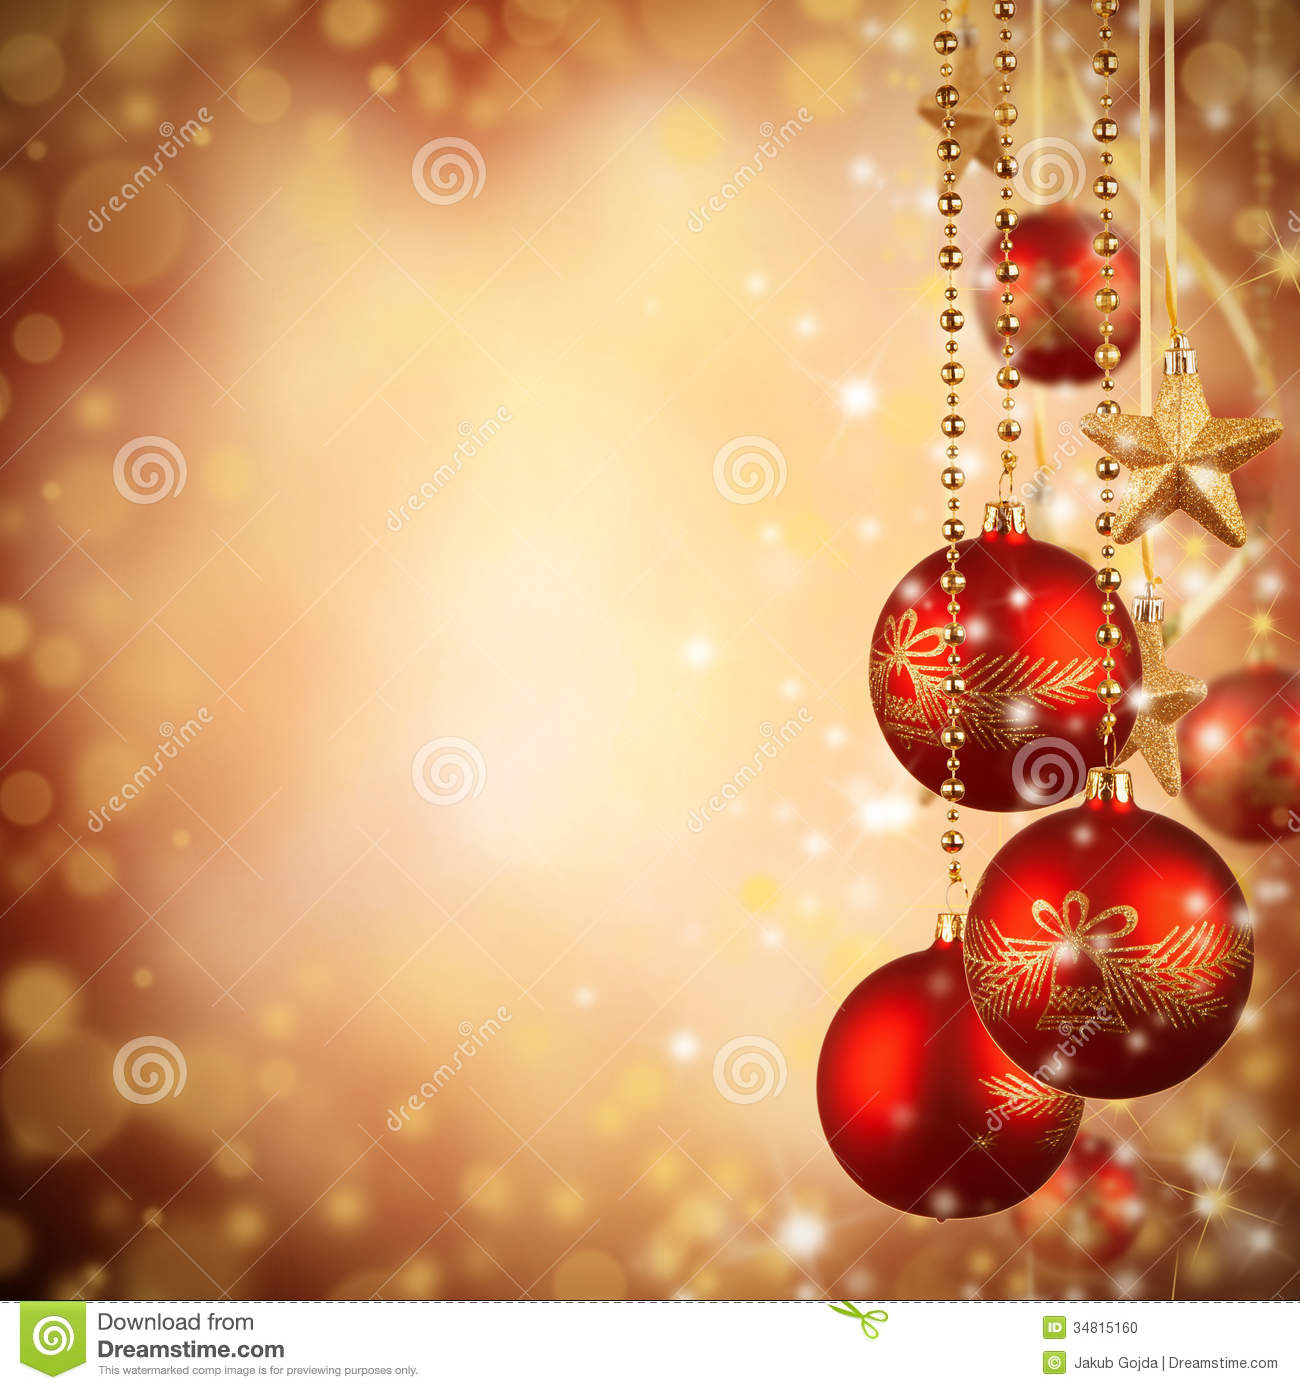 Christmas background stock photo image 34815160 for Background decoration images